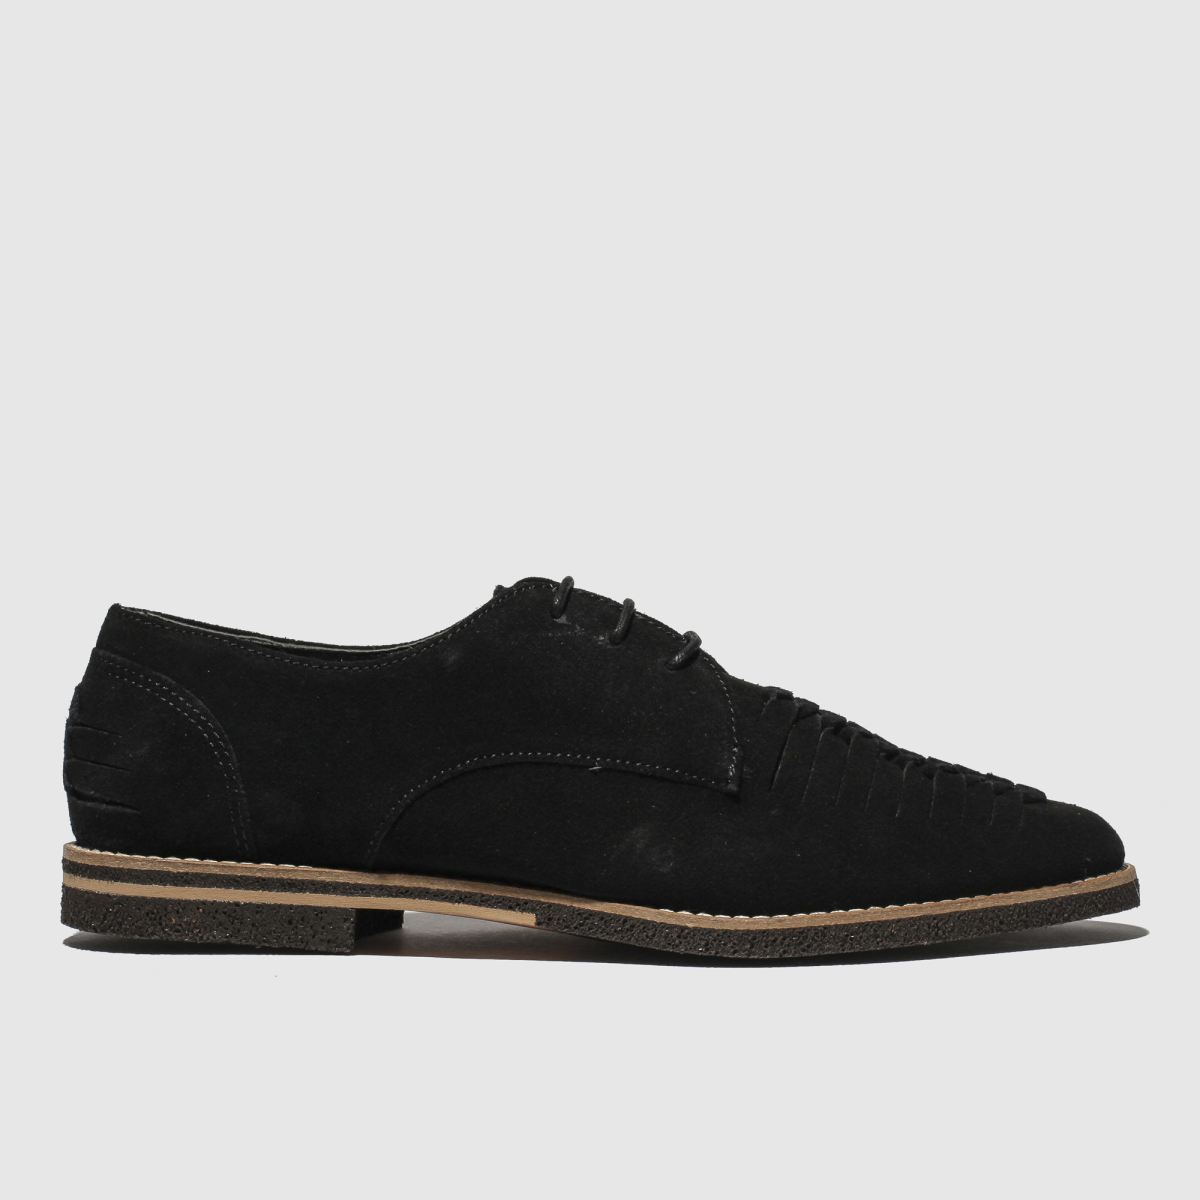 H By Hudson Black Chatra Shoes